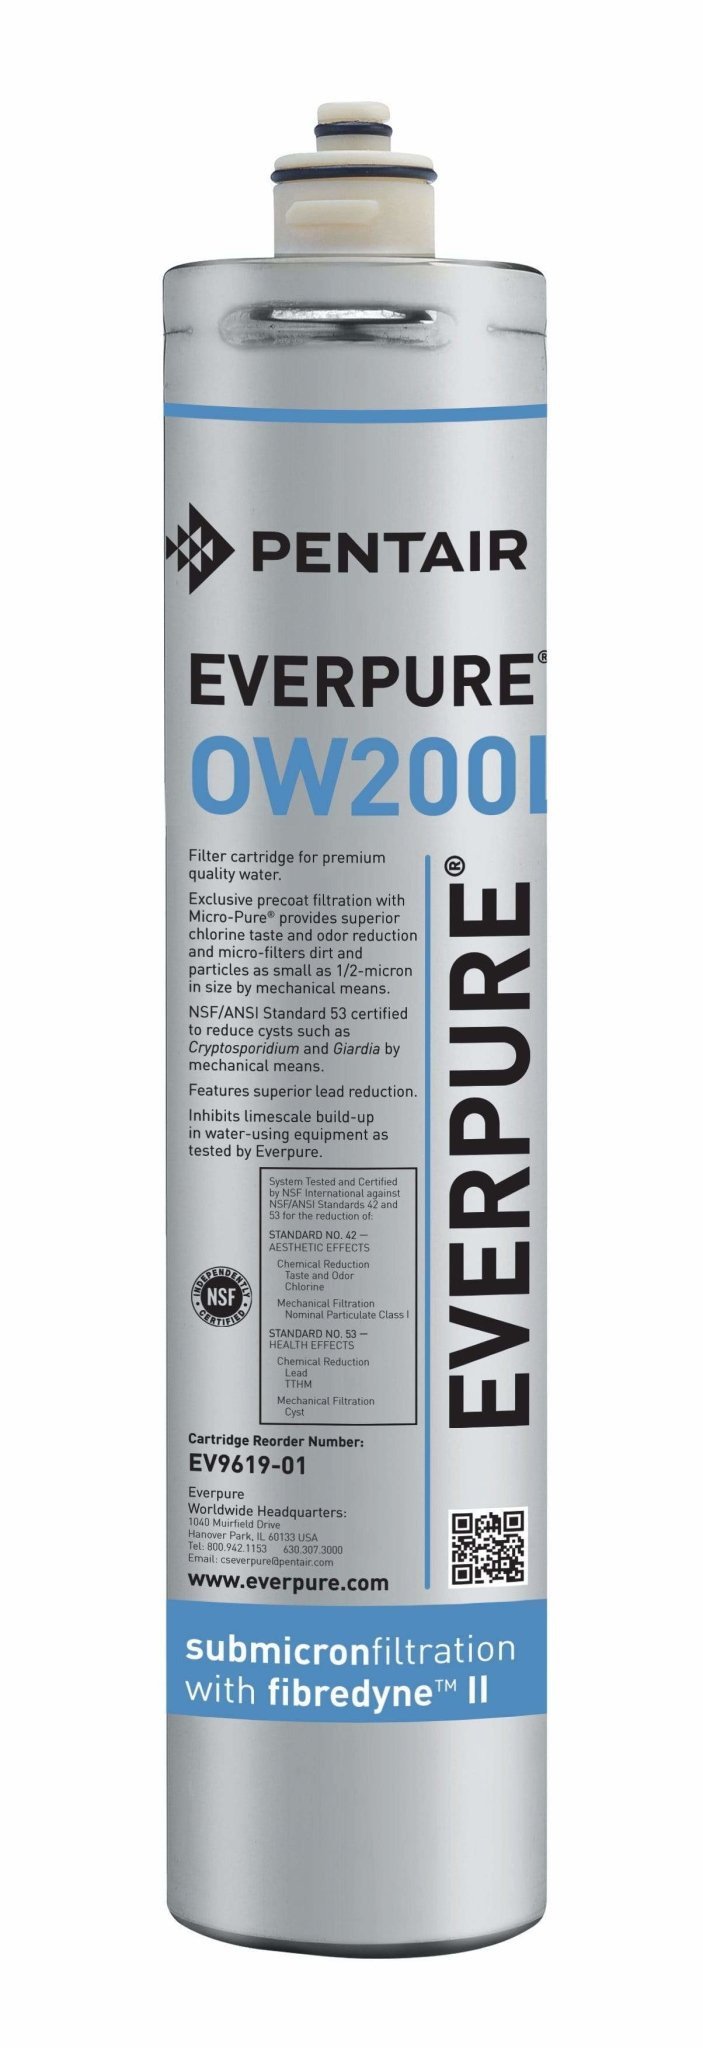 Everpure OW200L Cartridge EV9619-01 - Efilters.net